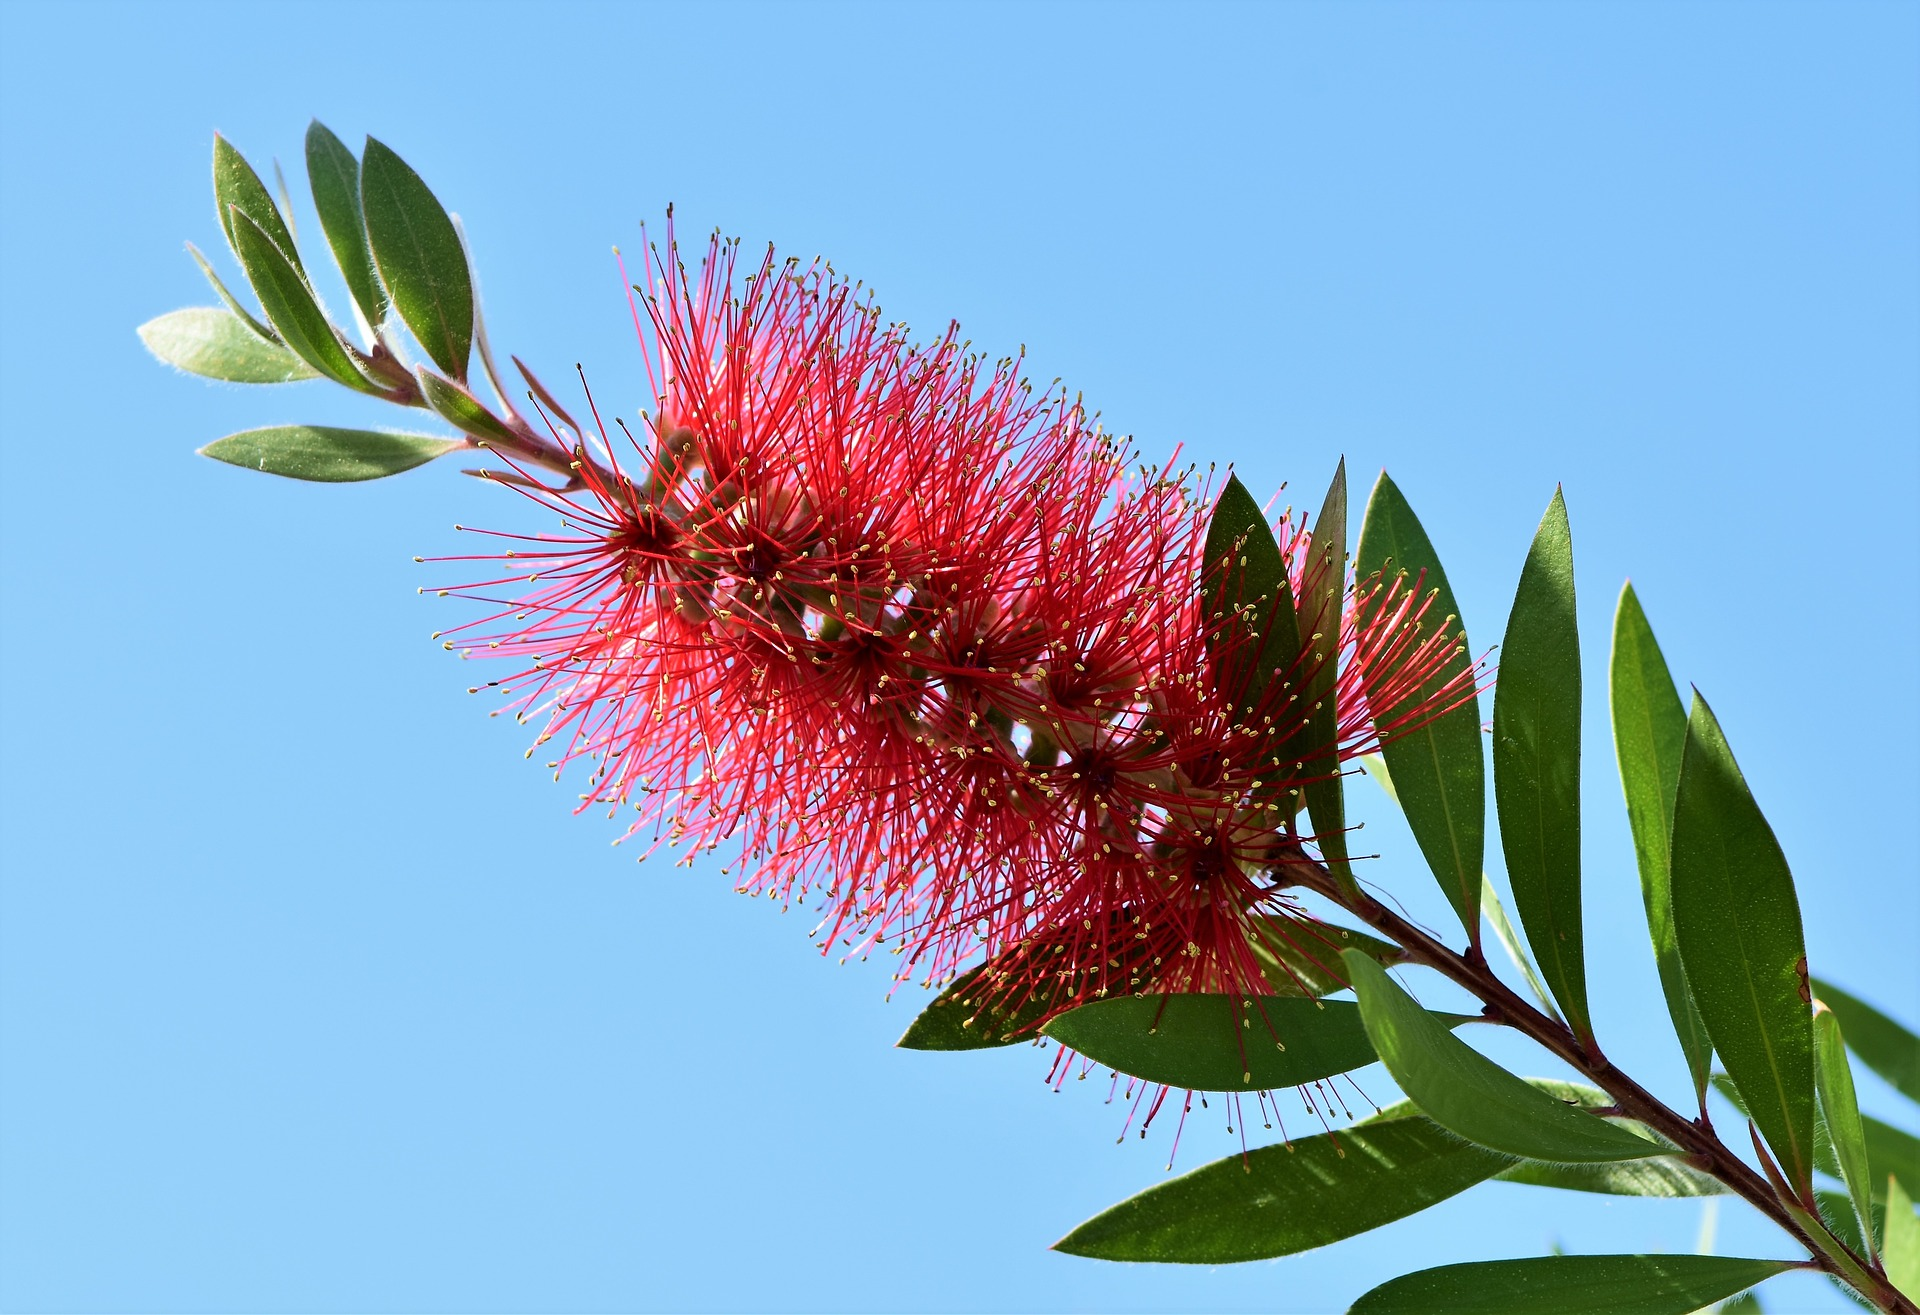 lemon-bottlebrush-3406640_1920.jpg